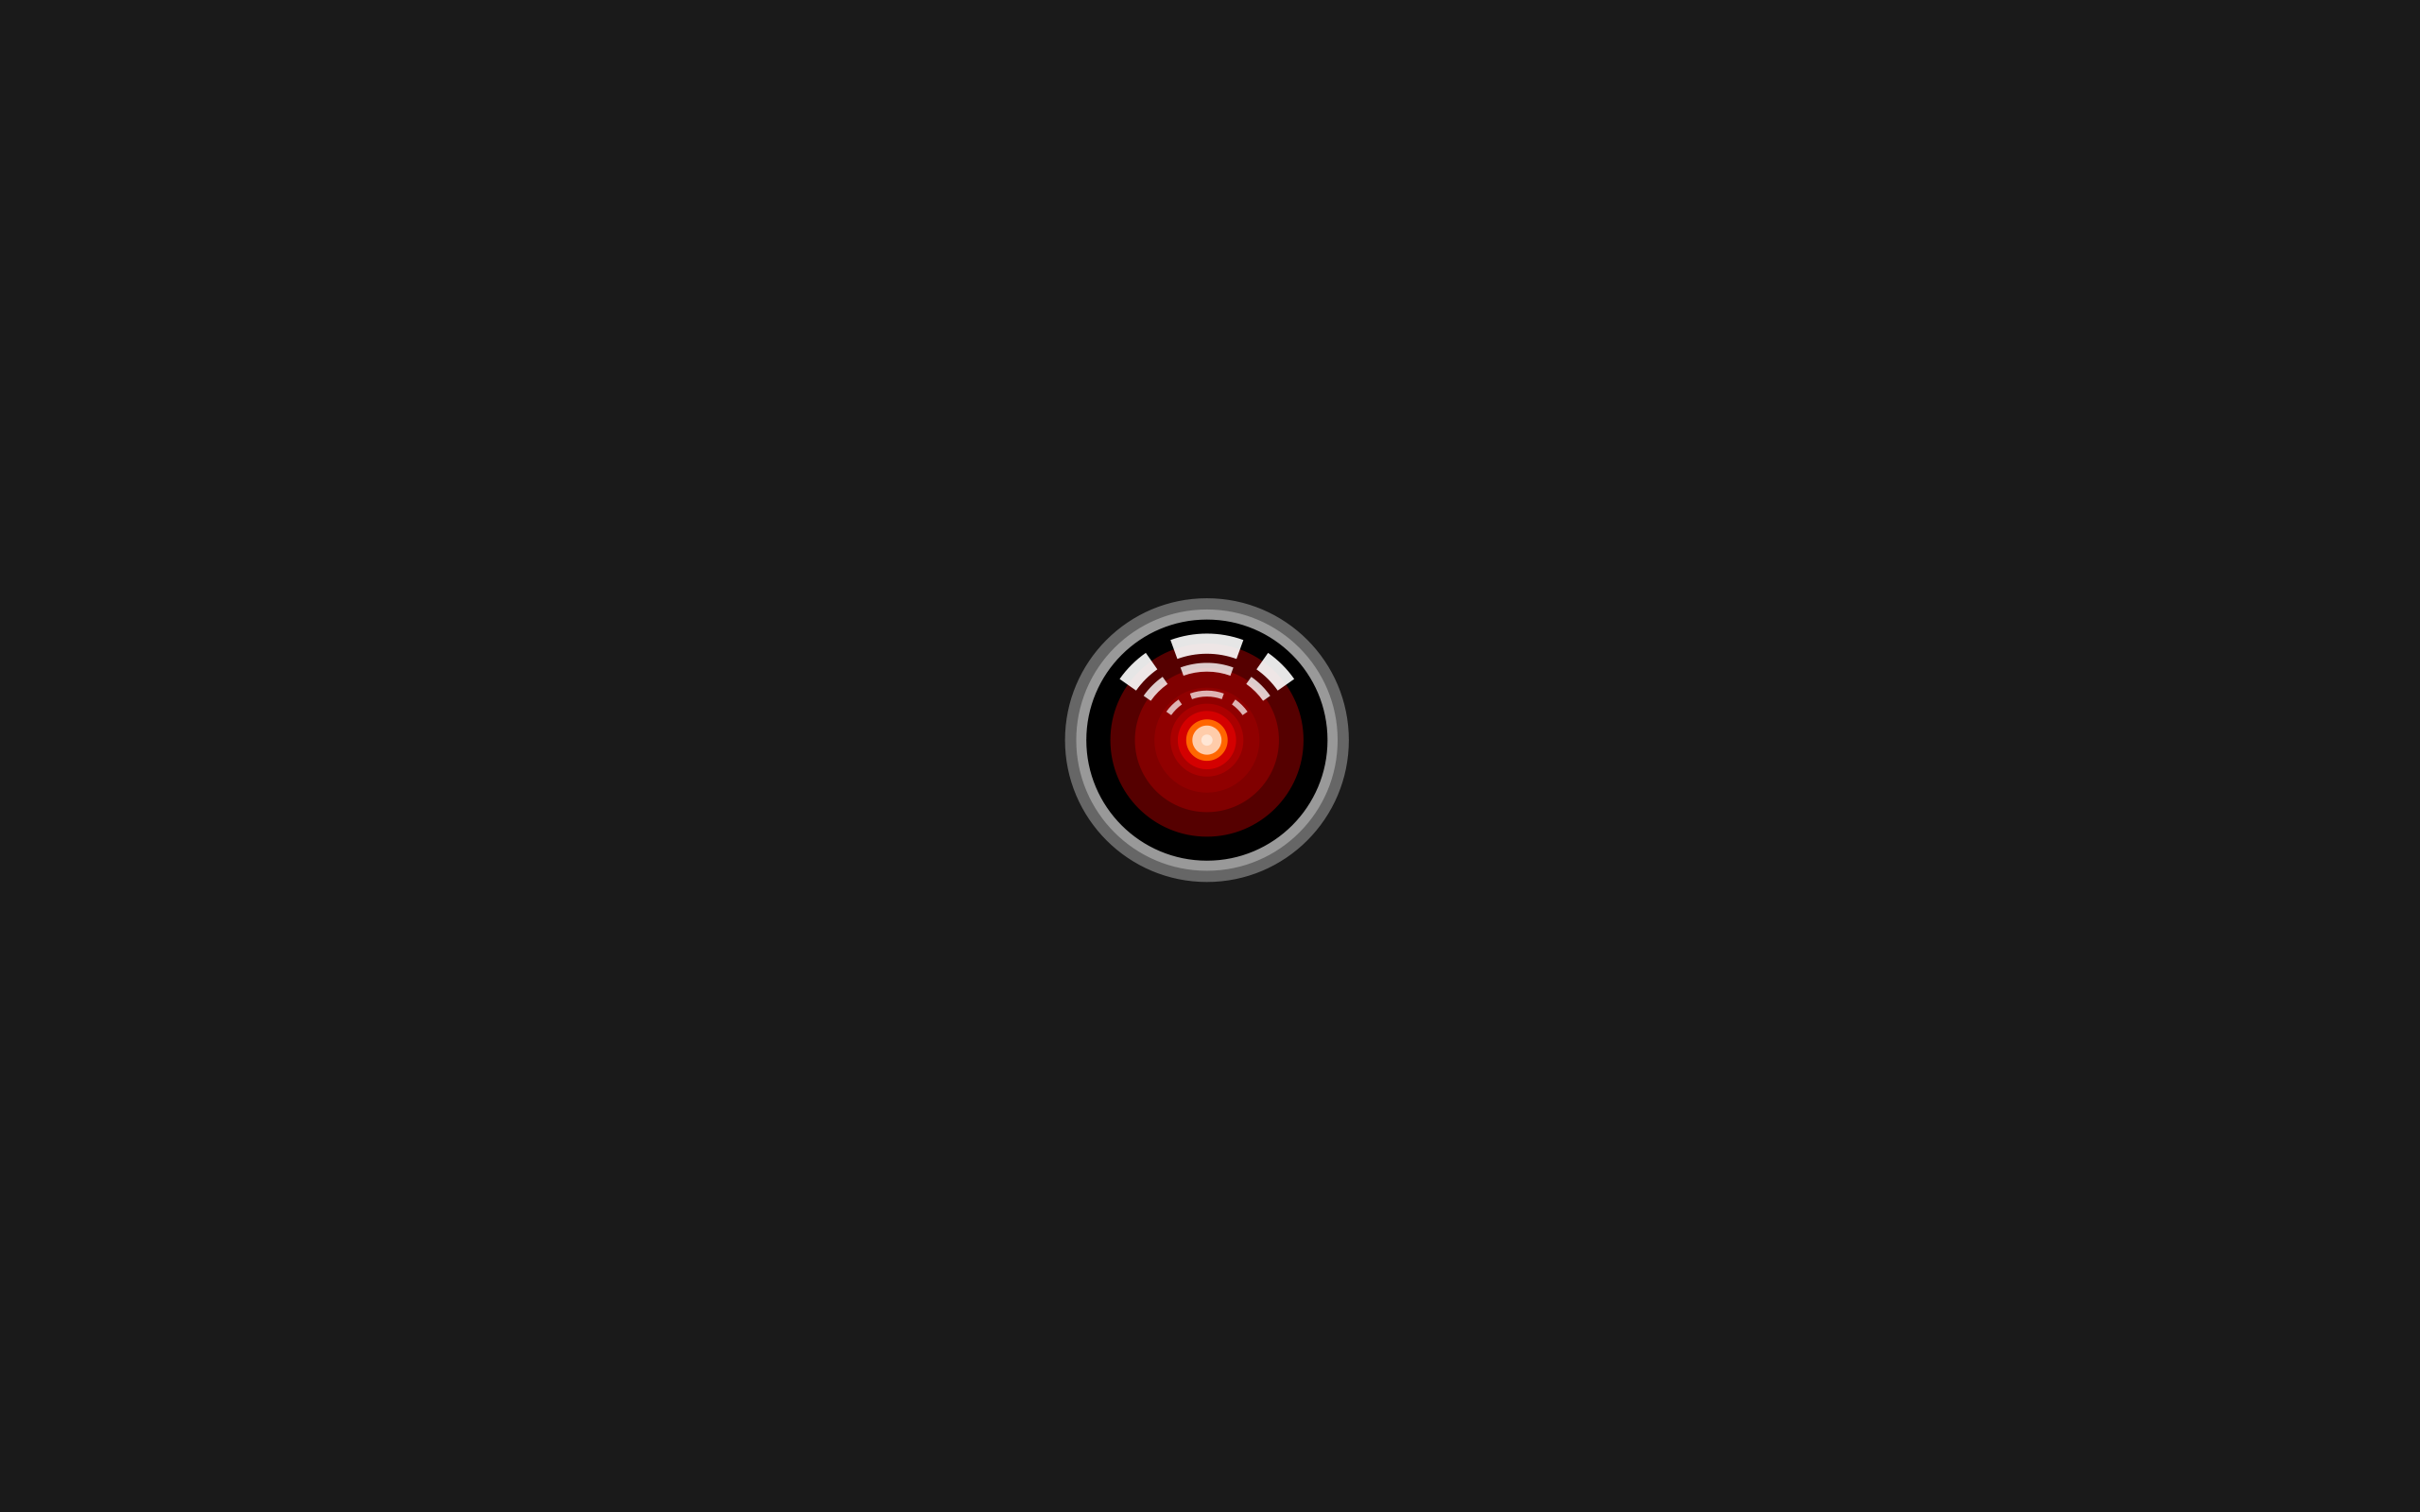 wallpapers/hal.png